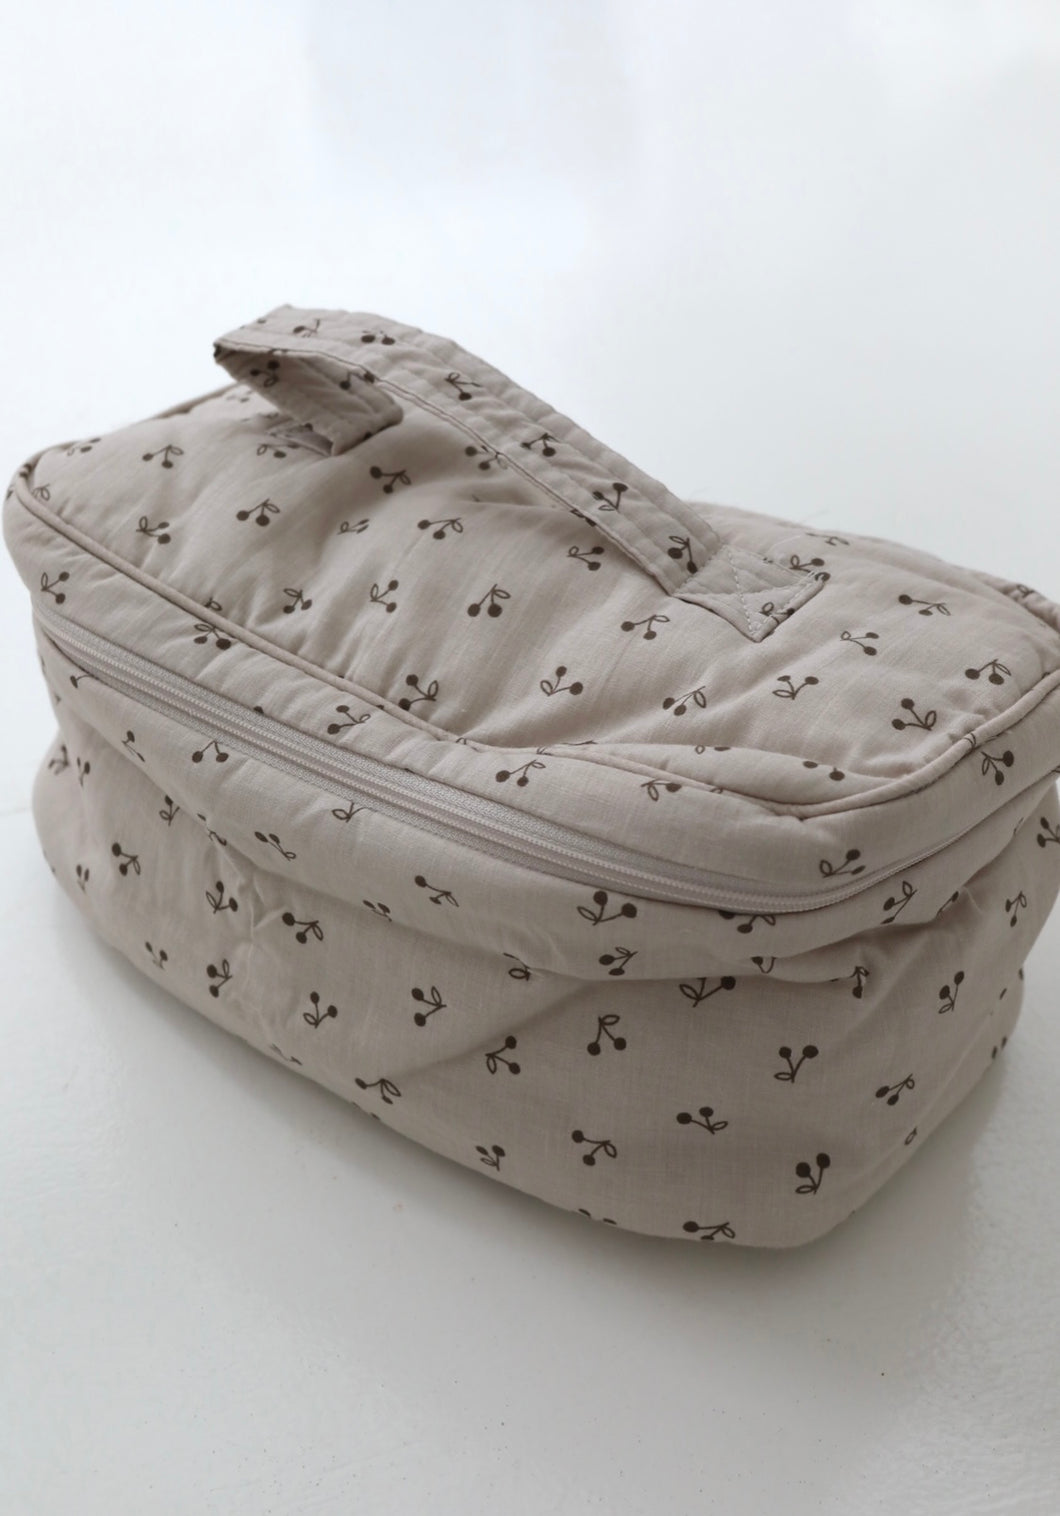 Mon bebe cherry quilted toiletry bag